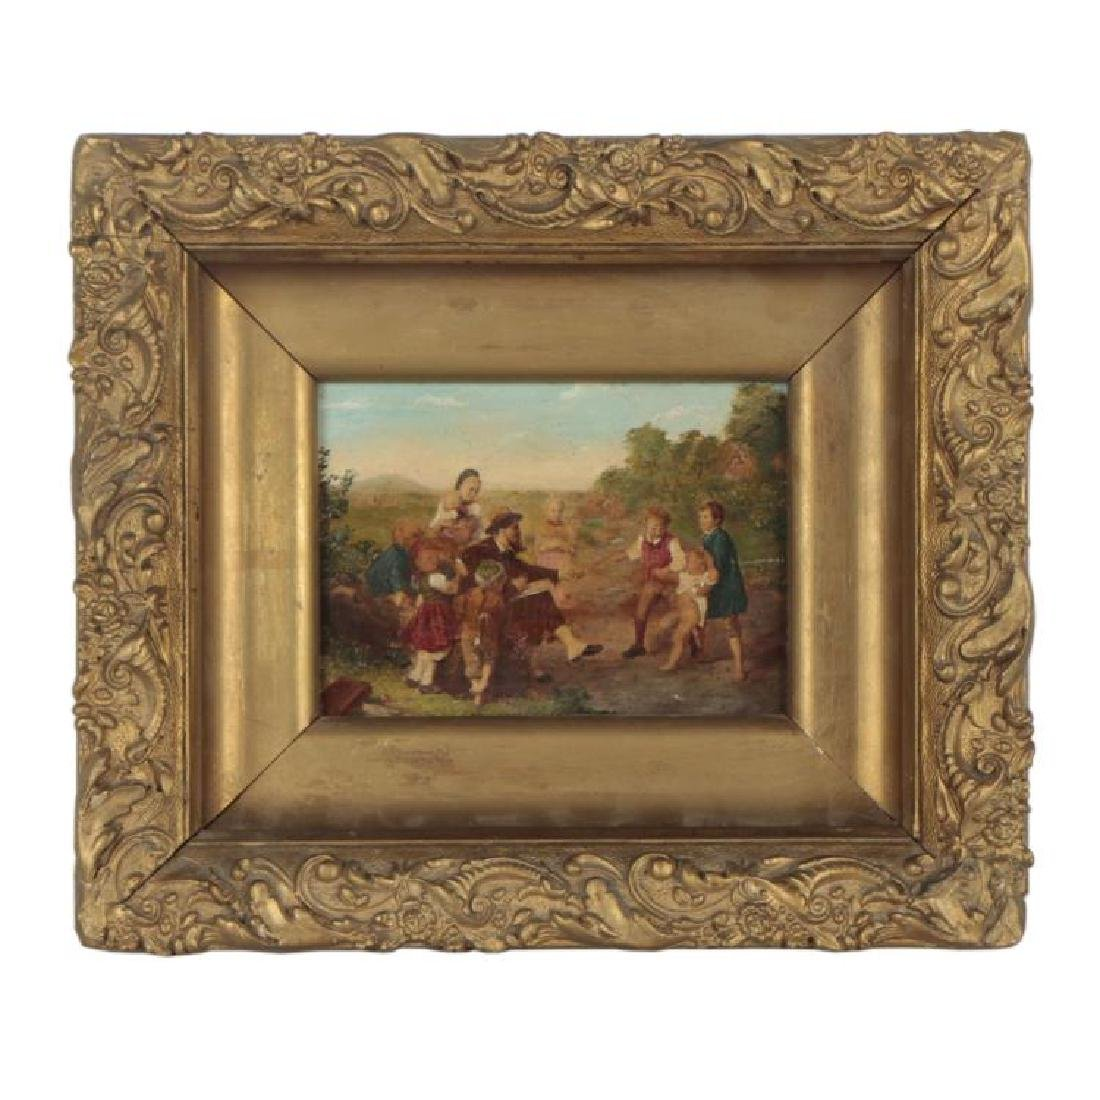 18th Century Oil Painting of a Pastoral Family Scene